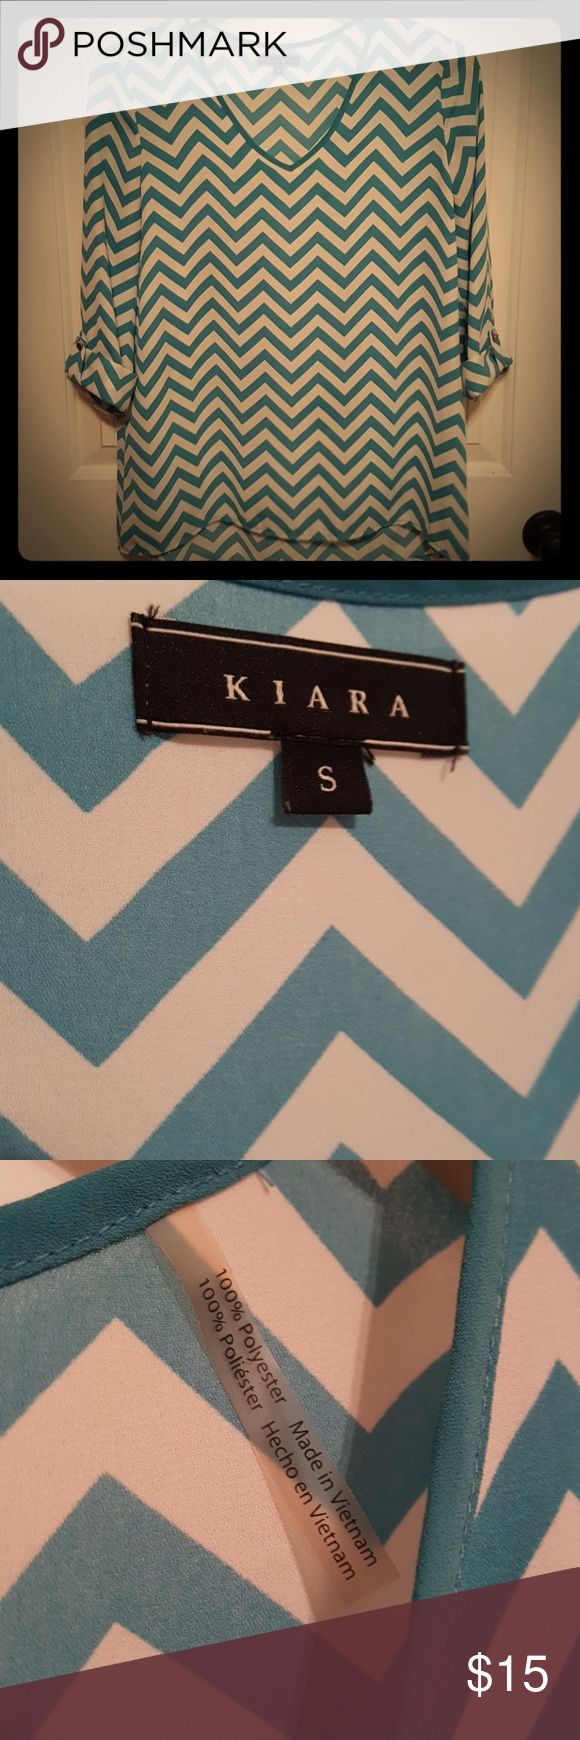 KIARA 3/4 SLEEVE CHEVRON TOP ☆Worn Once☆KIARA 3/4 SLEEVE CHEVRON TOP. Turquoise & white. Hi low style. Pullover. Buttons on sleeves for rolled look are decorative. Very cool and comfy! Feel free to SHOP my closet☆FOLLOW ME☆BUNDLE AND SAVE☆ See something you like? ☆MAKE AN OFFER!☆ LIKE IT so you can GRAB IT during a shipping DISCOUNT or price DROP! •NO TRADES• I'm always here to answer any questions you may have! KIARA Tops